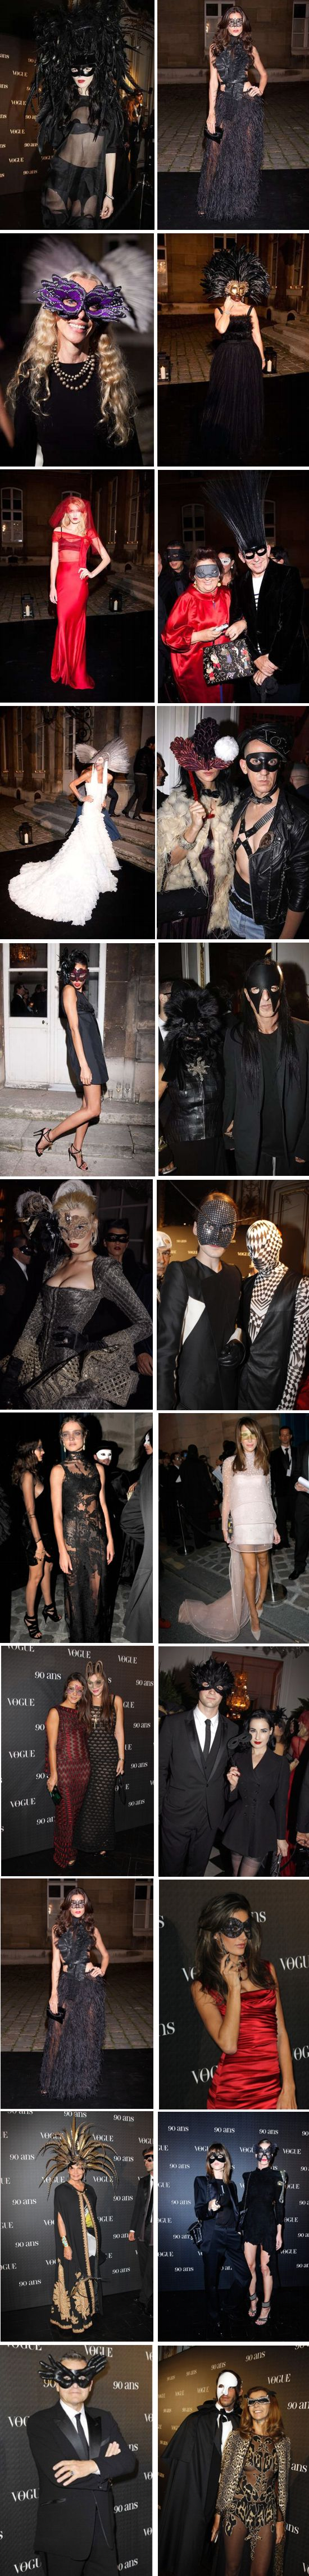 vogue party masks